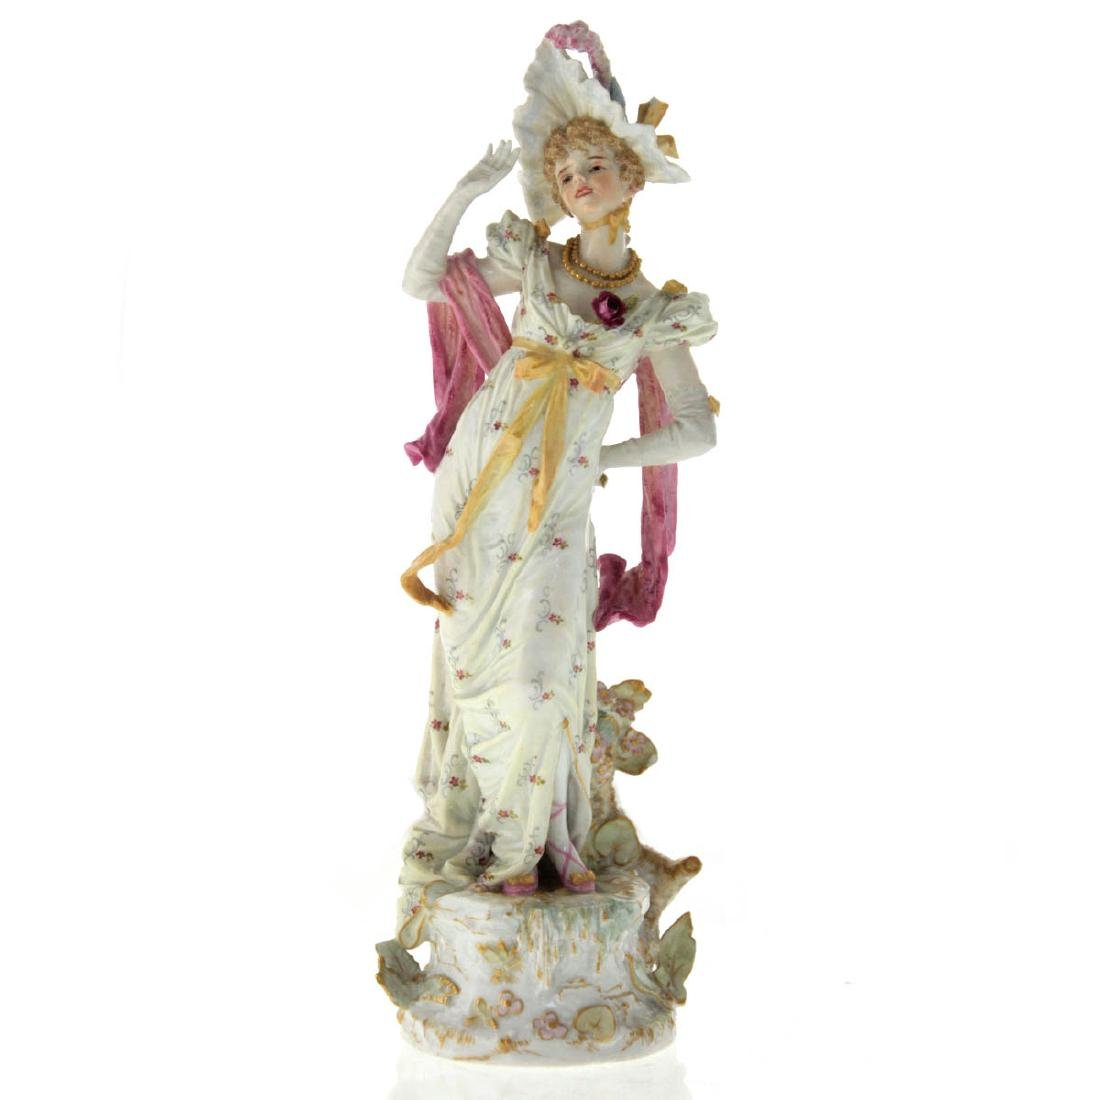 Meissen Porcelain Figure of a Young Lady, 19th Century.